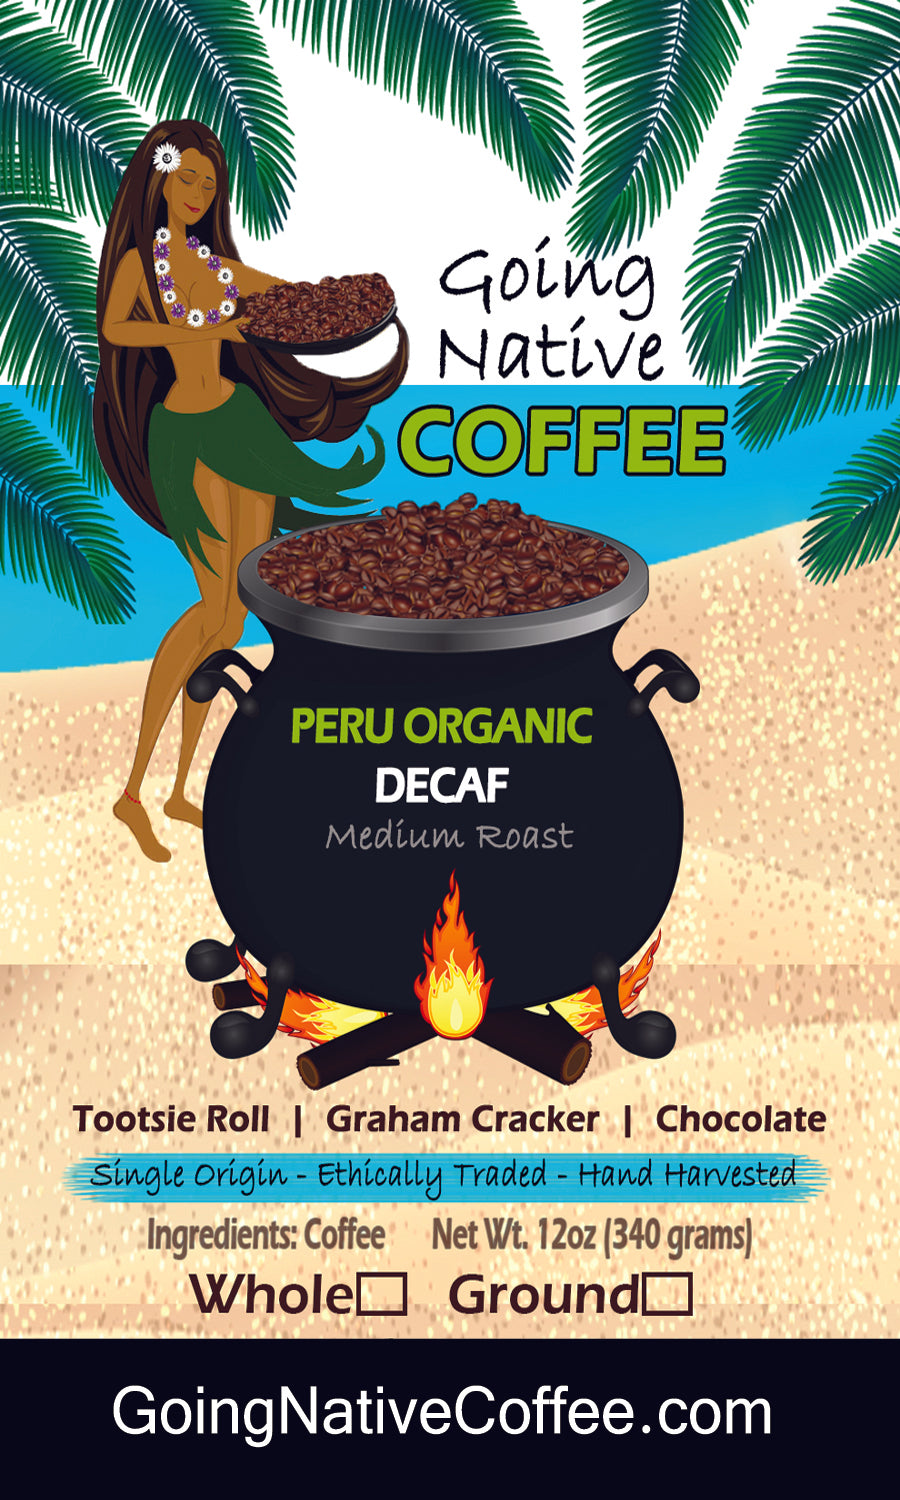 Peru Organic Swiss Water Decaf Subscription - Going Native Coffee Club